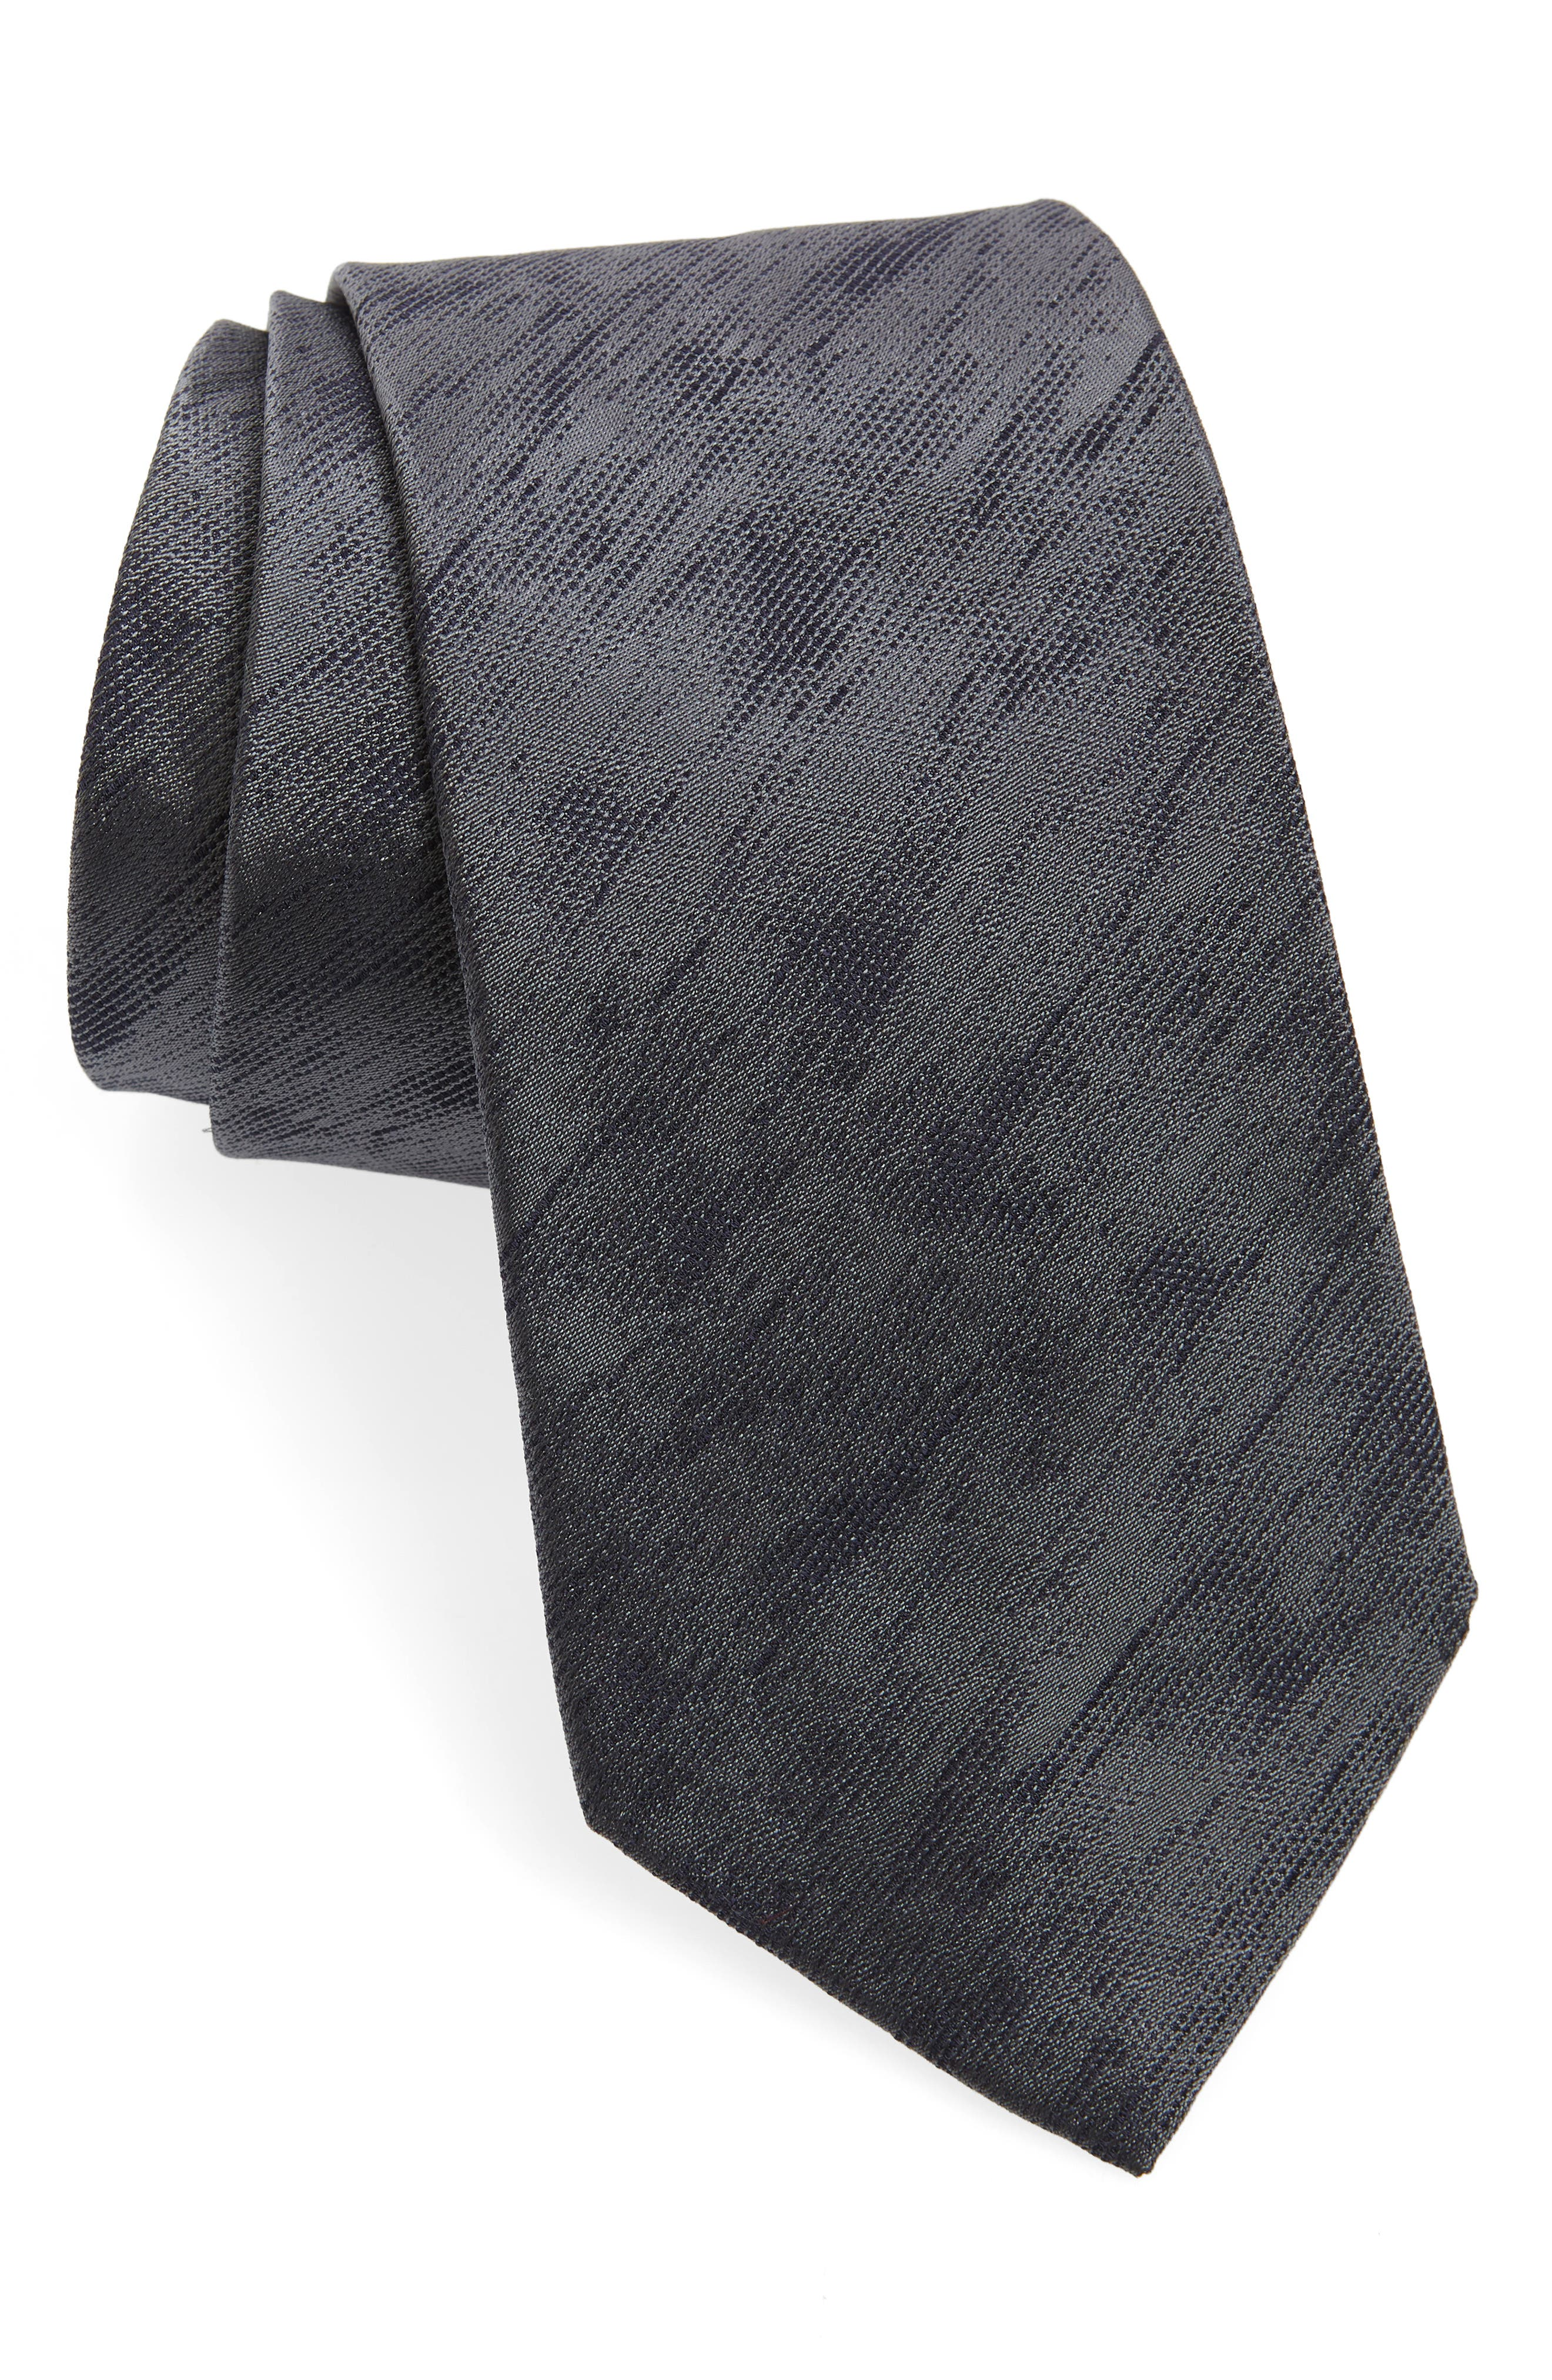 Solid Silk Tie,                             Main thumbnail 1, color,                             STONE